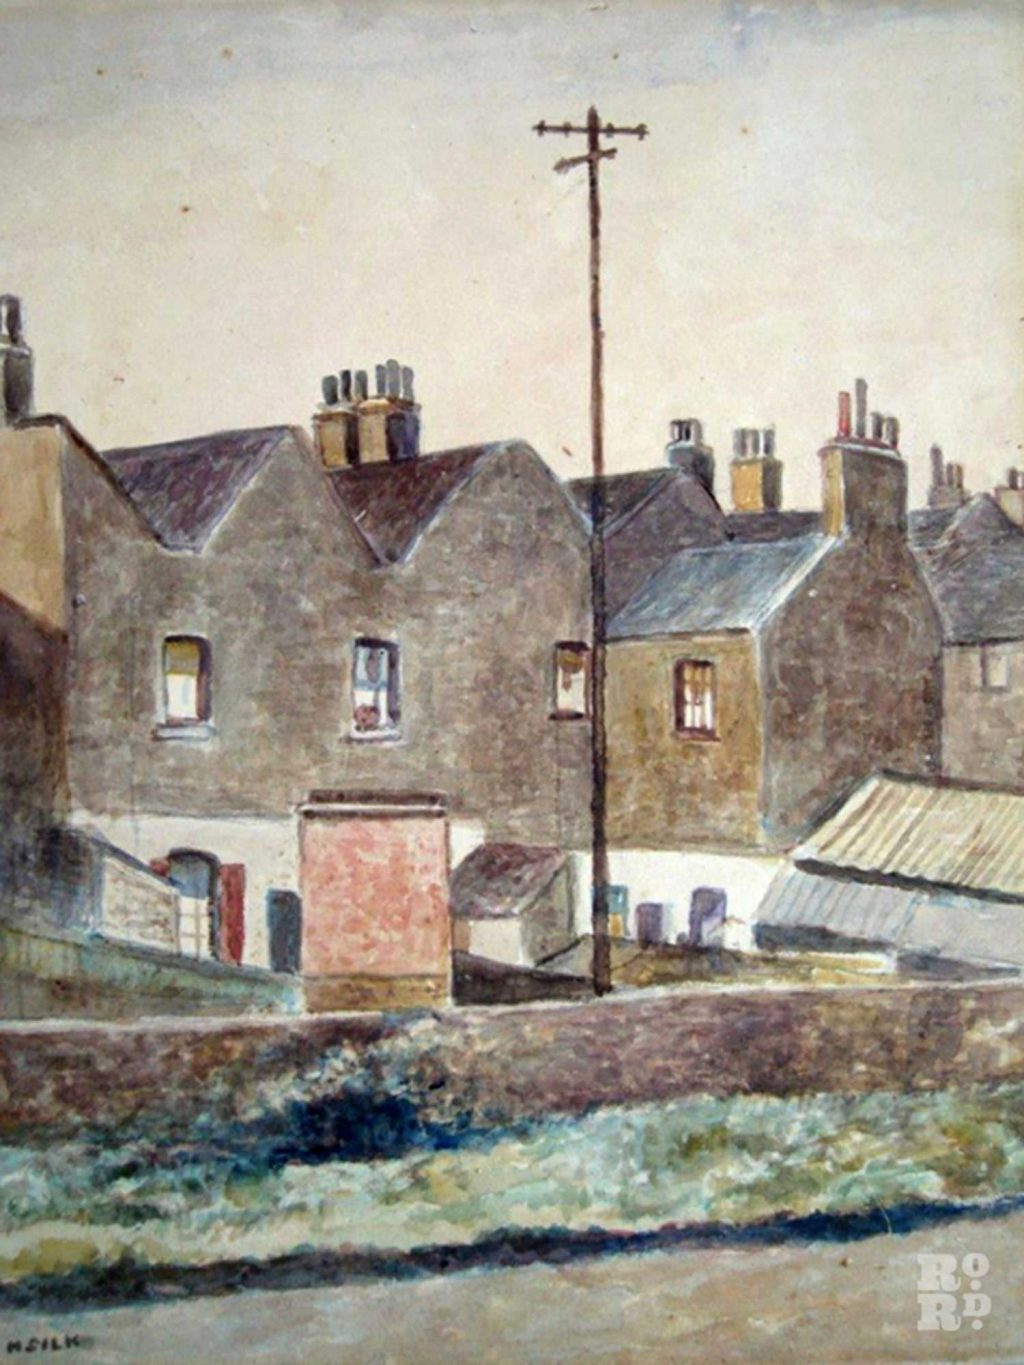 Painting of old houses by Henry Silk of the East London Group